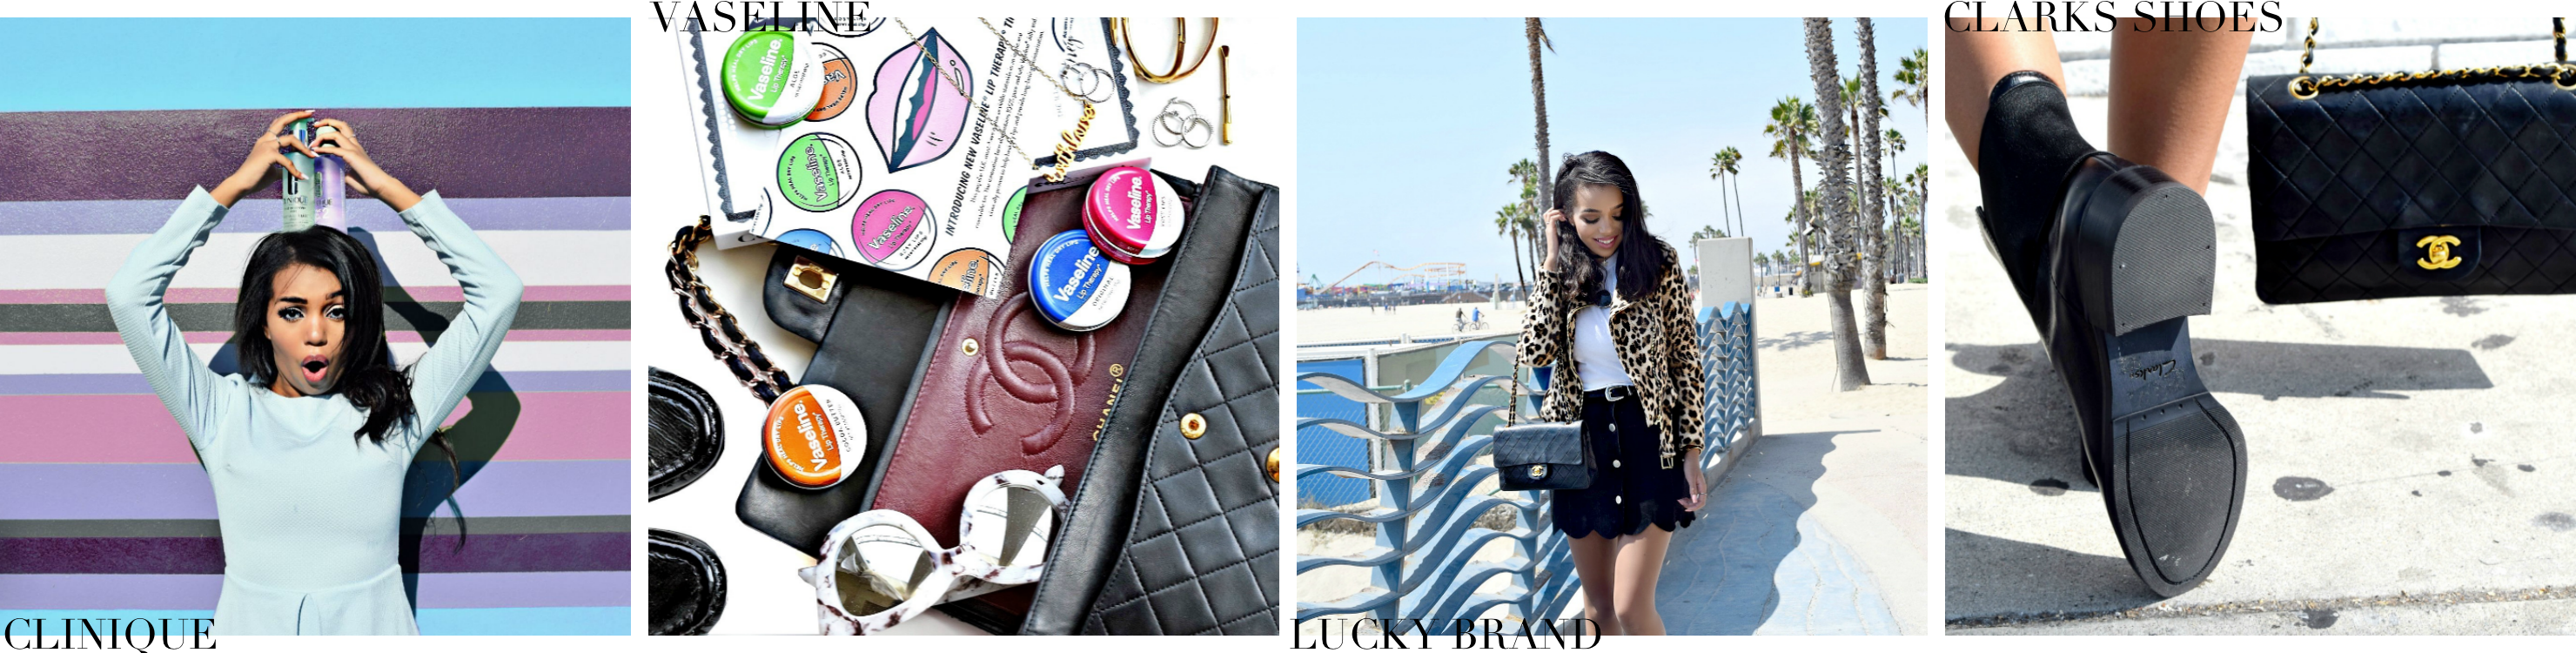 Blogging 411 | How To Collaborate With Brands // Paris Travel Diary & Street Style Spring Look // Missguided Gingham Print Top and Gingham Print Trend // Fishnet Tights // Blue Chanel Velvet Wallet On Chain // Collectively Inc Brand Collaborations // Los Angeles Fashion Blogger Daphne Blunt: To Style, With Love